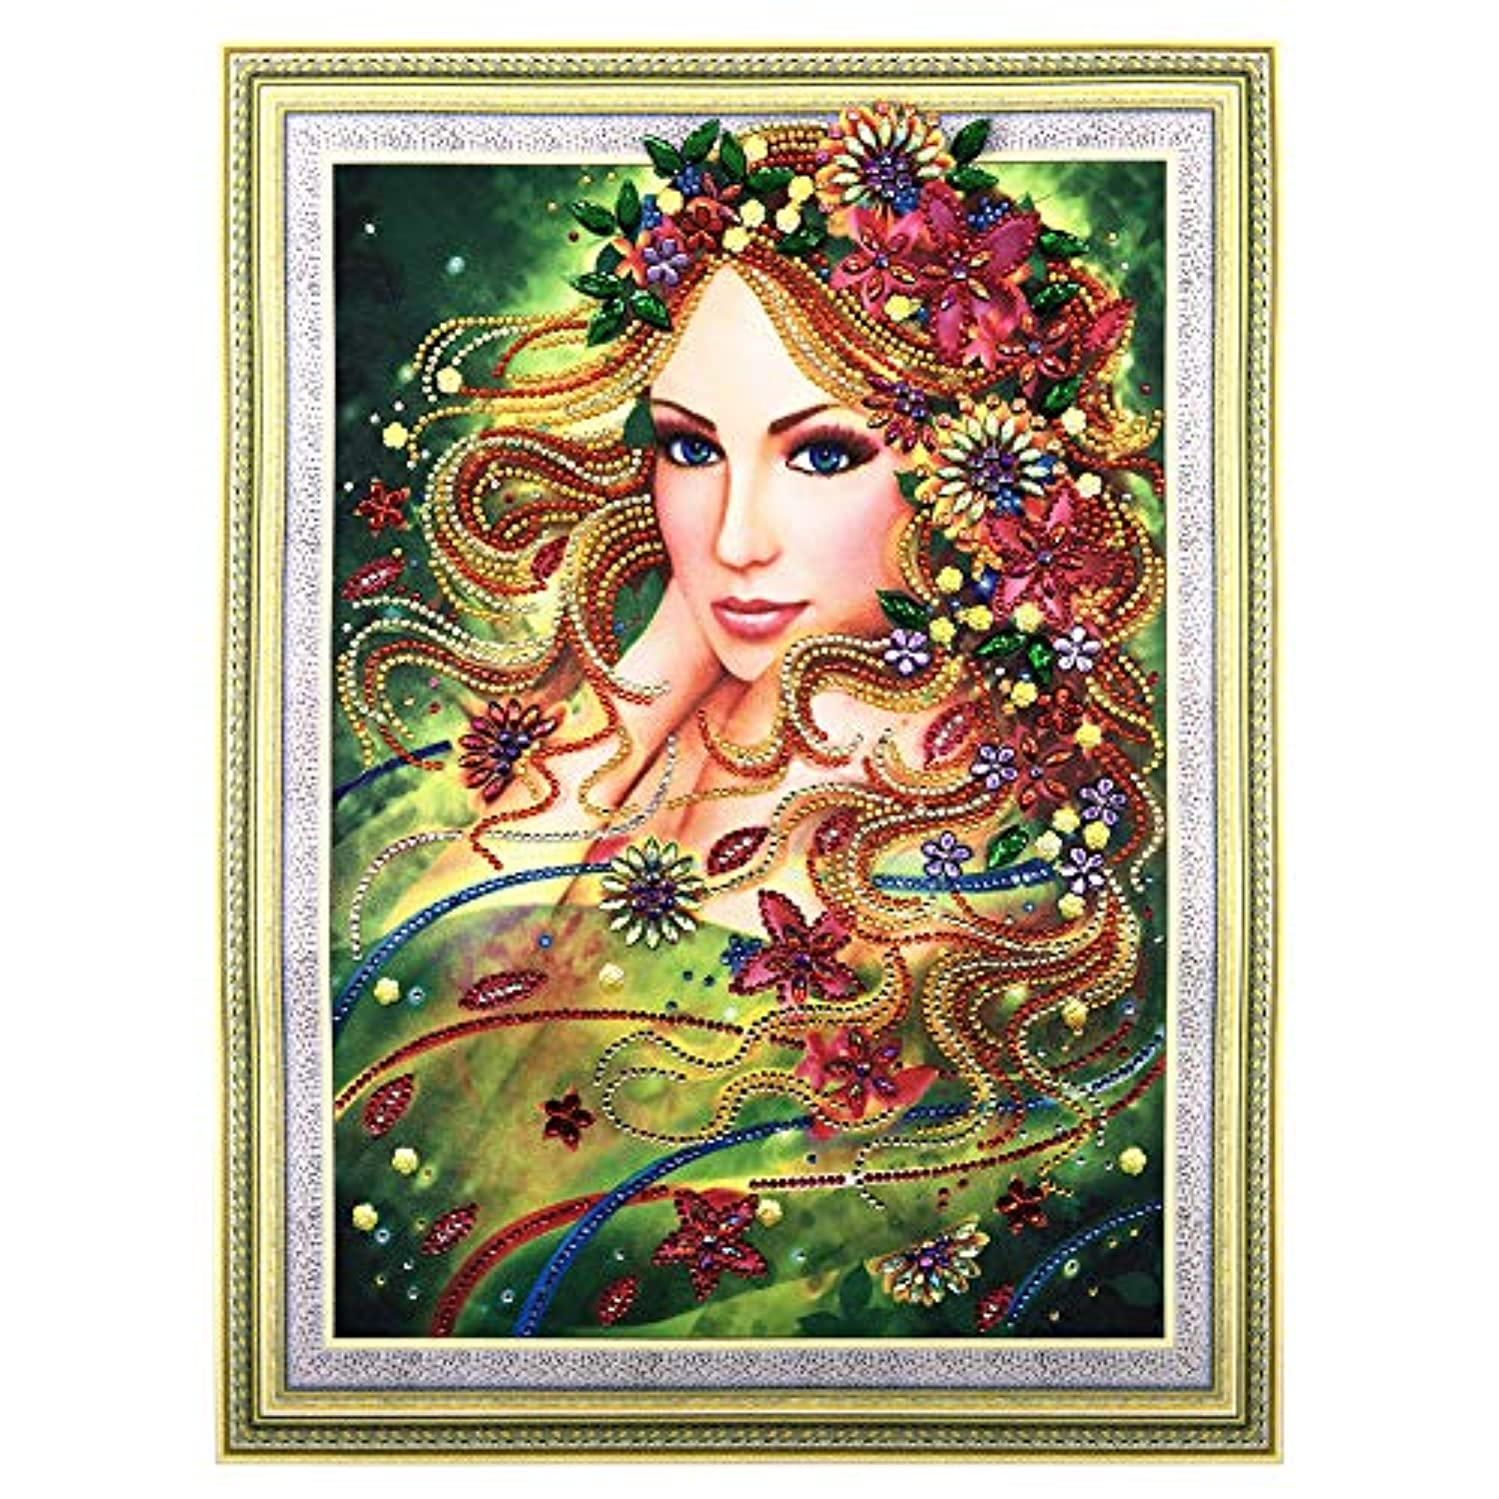 Hibah DIY 5D Diamond Painting Special Shape Diamond Mosaic Set, Cross Stitch Rhinestones Europe and The United States Modern Beauty Embroidery Picture 40x50cm (5)